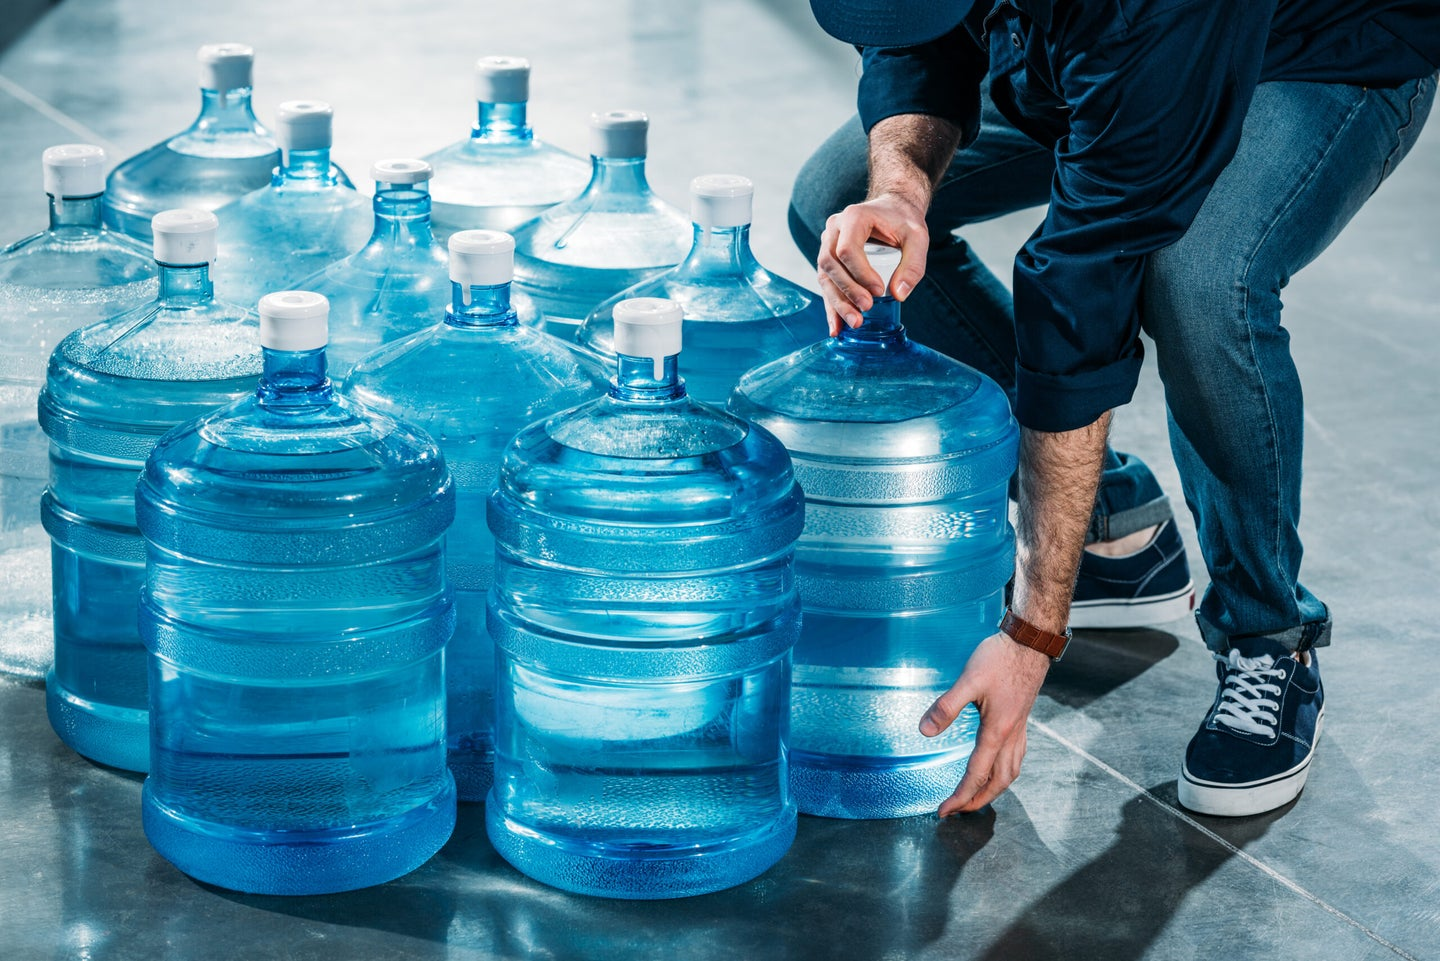 man delivering drinking water in jugs